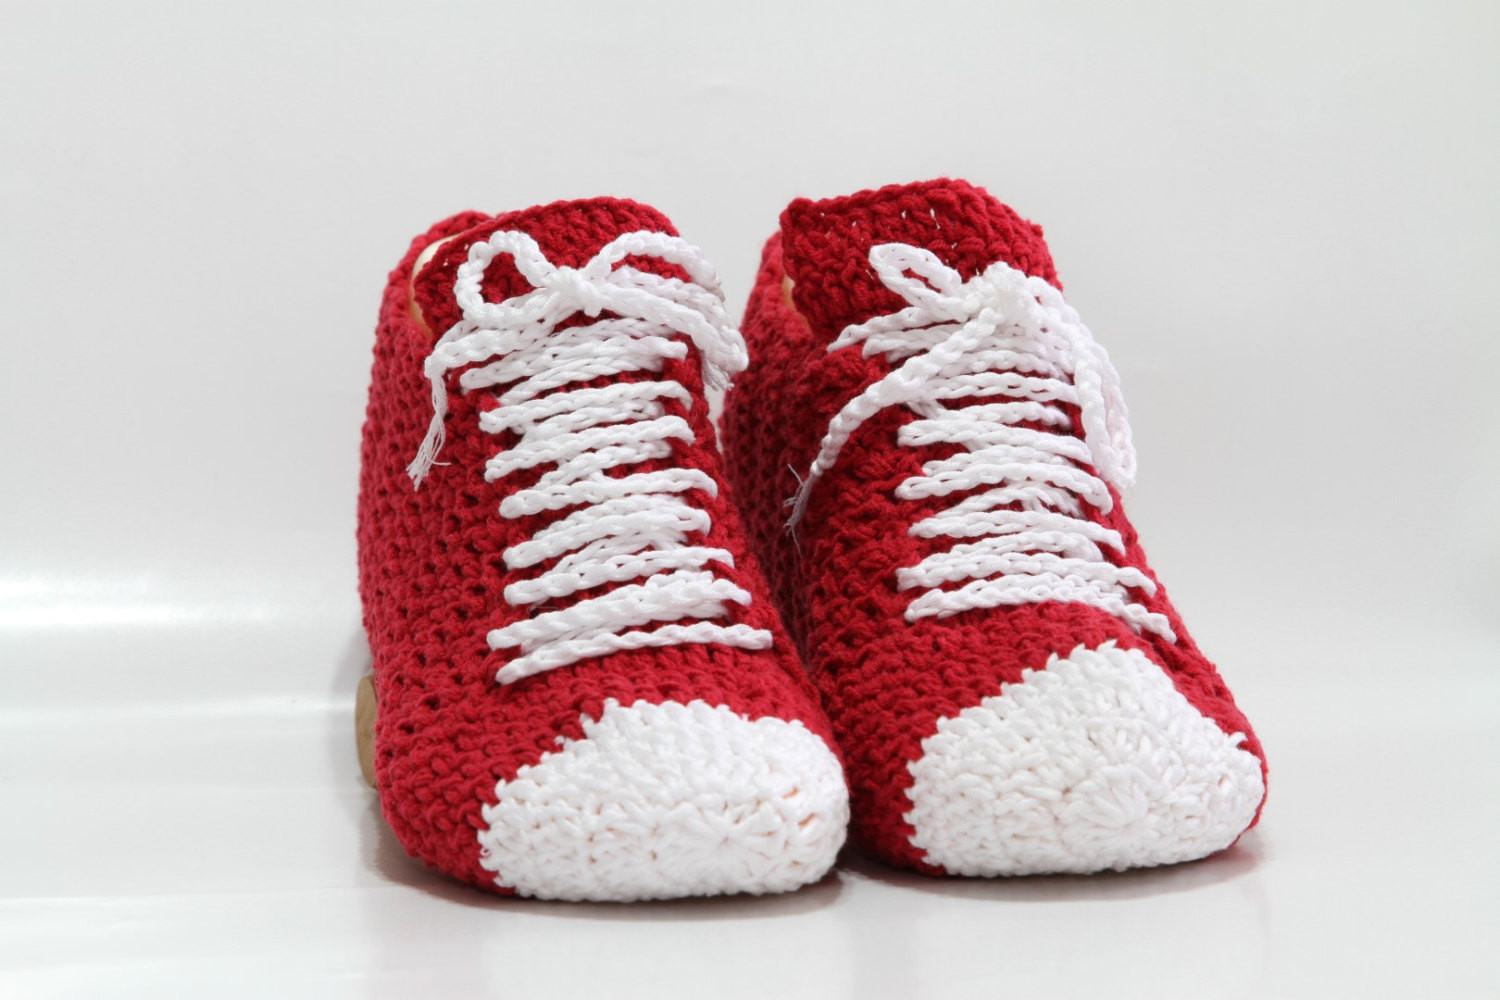 Crochet Sneakers Luxury Red Crocheted Sneaker Slippers Pattern Uni Slippers Pdf Of Gorgeous 50 Pics Crochet Sneakers